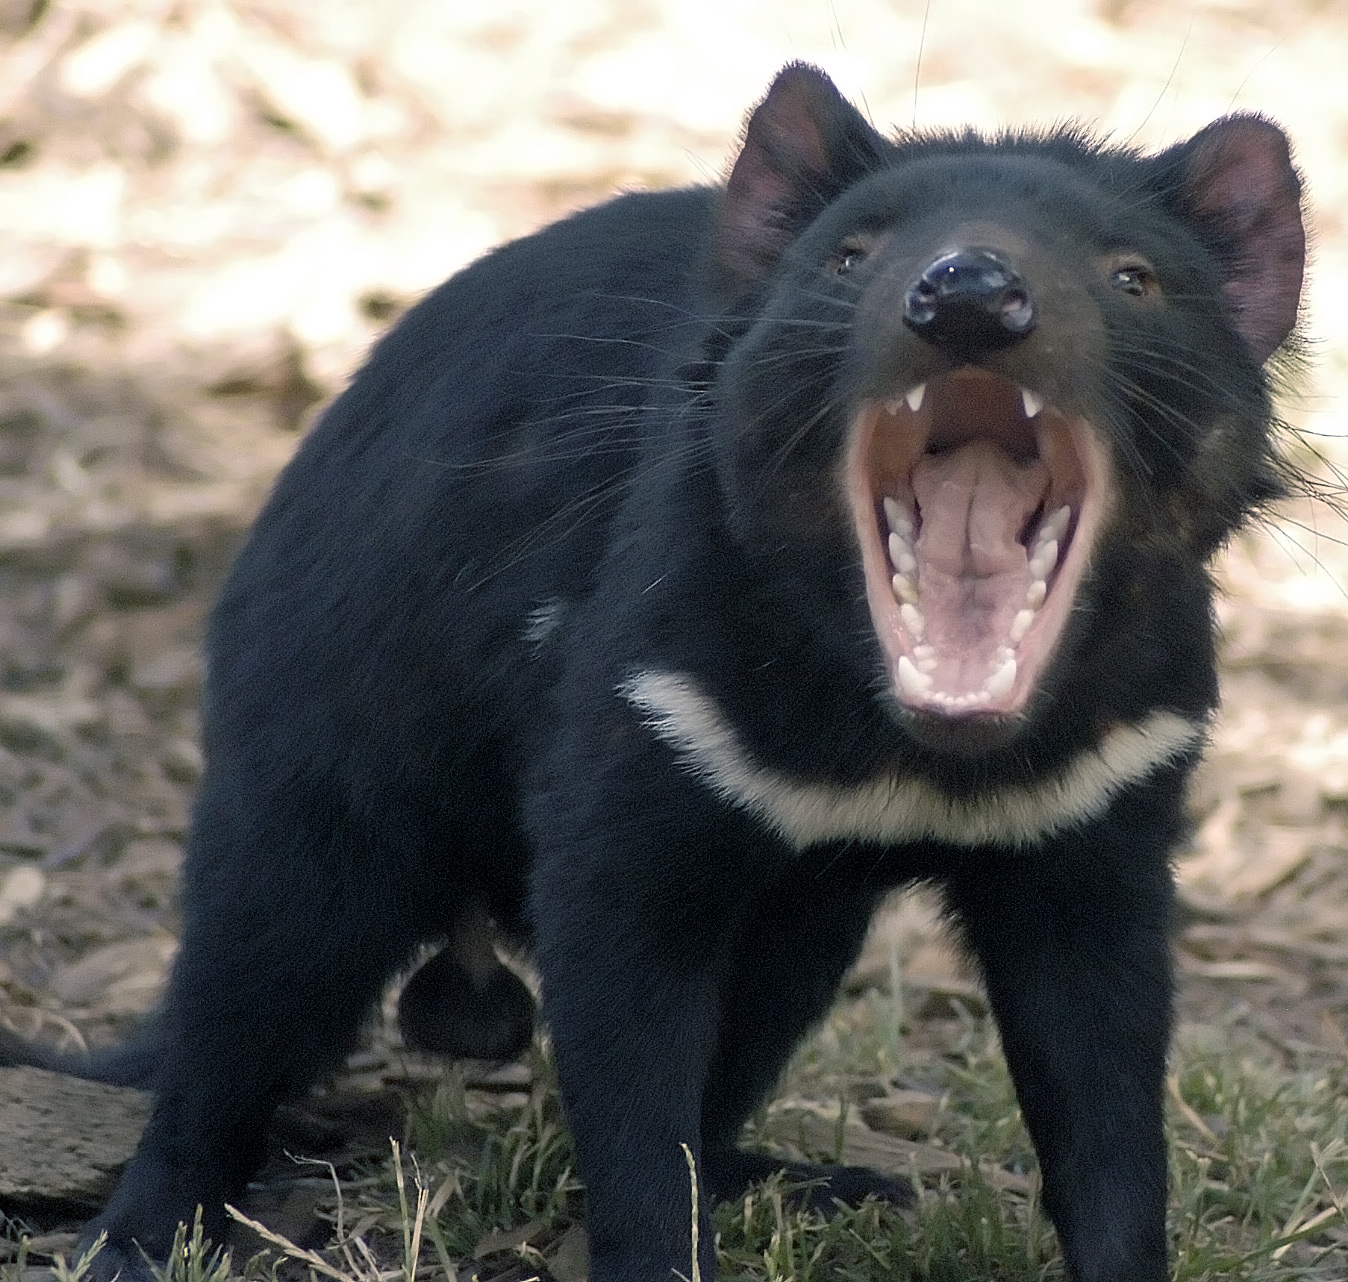 Tasmanian devils are plagued by a contagious facial cancer